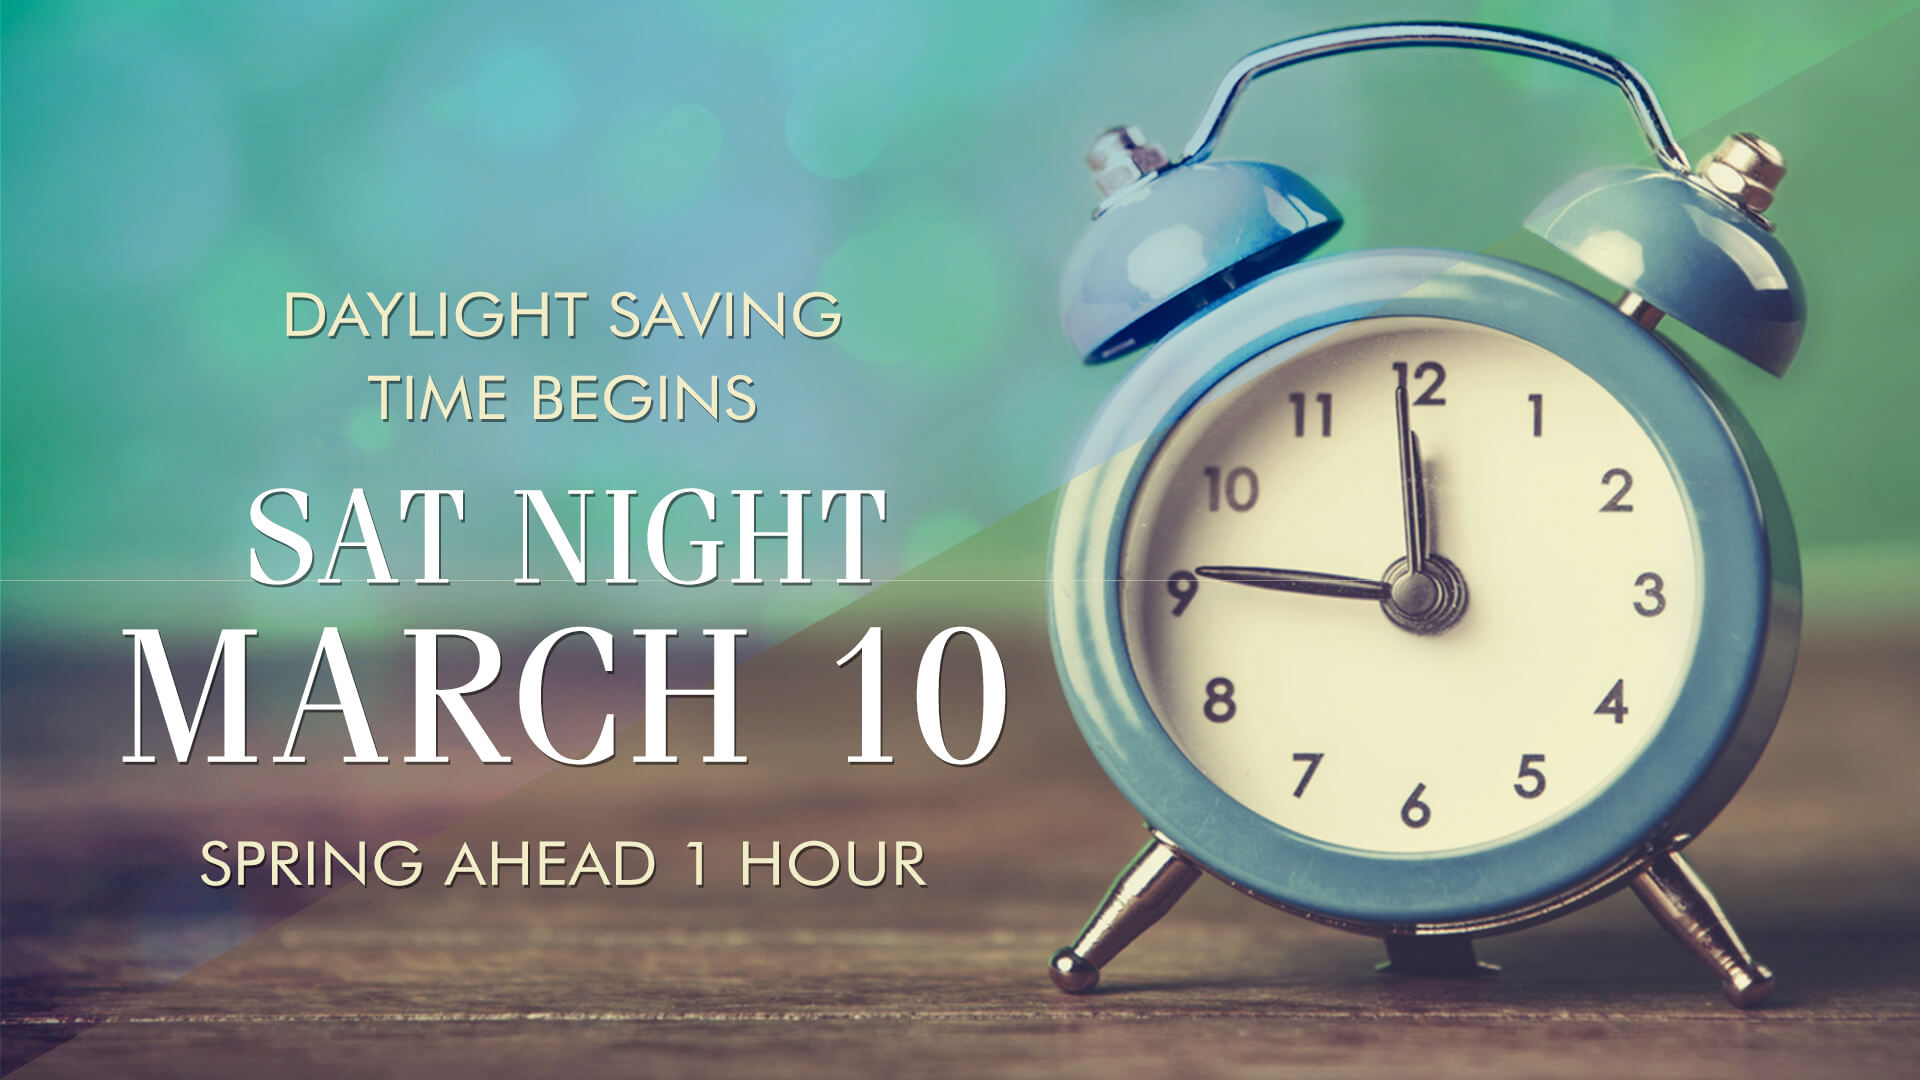 Prepare To Lose An Hour Daylight Saving Time Starts On